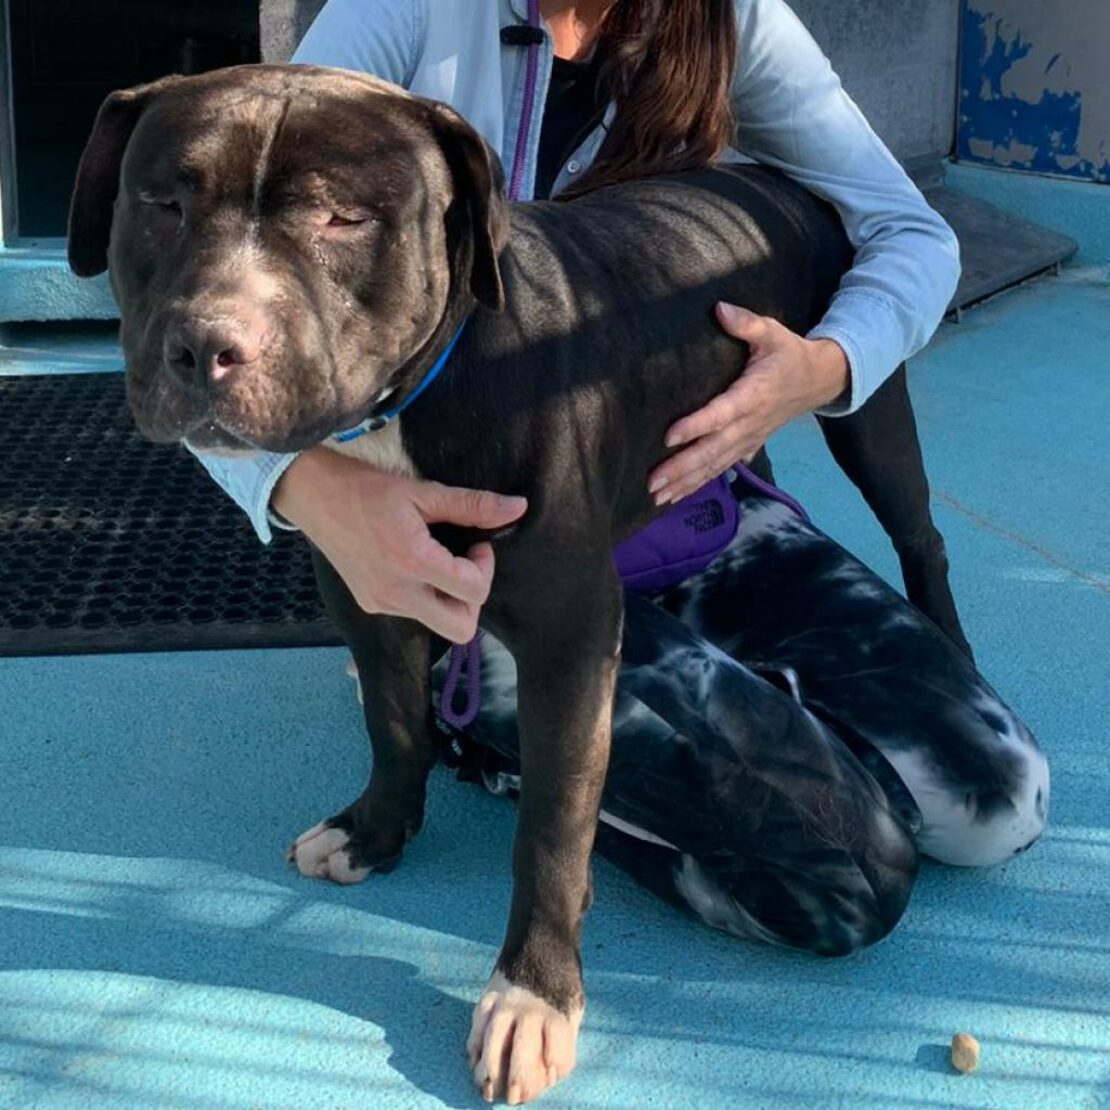 big black dog with white muzzle and paws stands with a person in a blue sweater on a blue ground. Dog is blind.